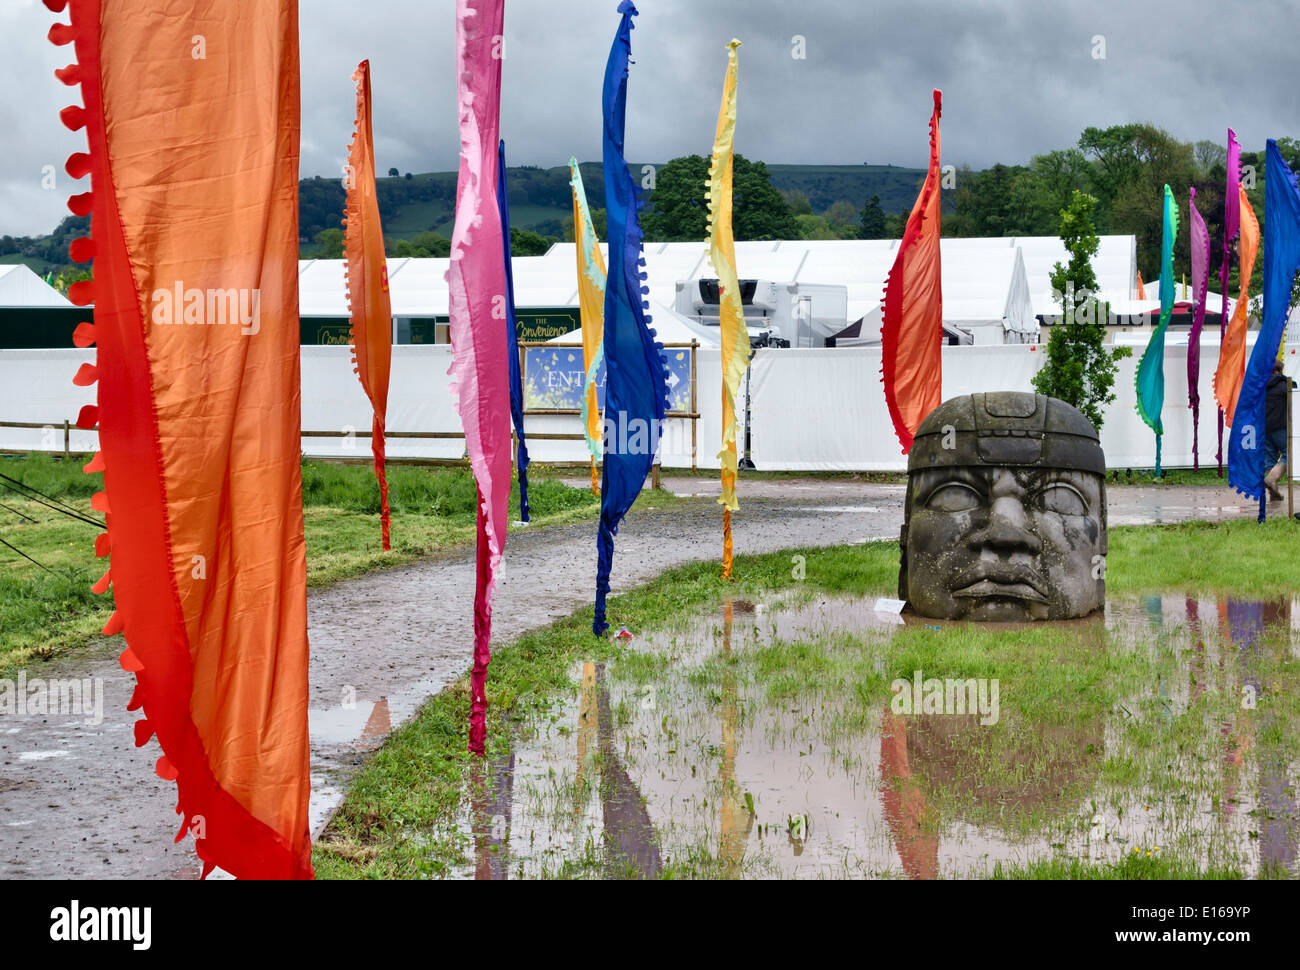 A wet day at the 2014 Hay Festival of Literature - the statue is a gift from the city of Veracruz in Mexico - Stock Image